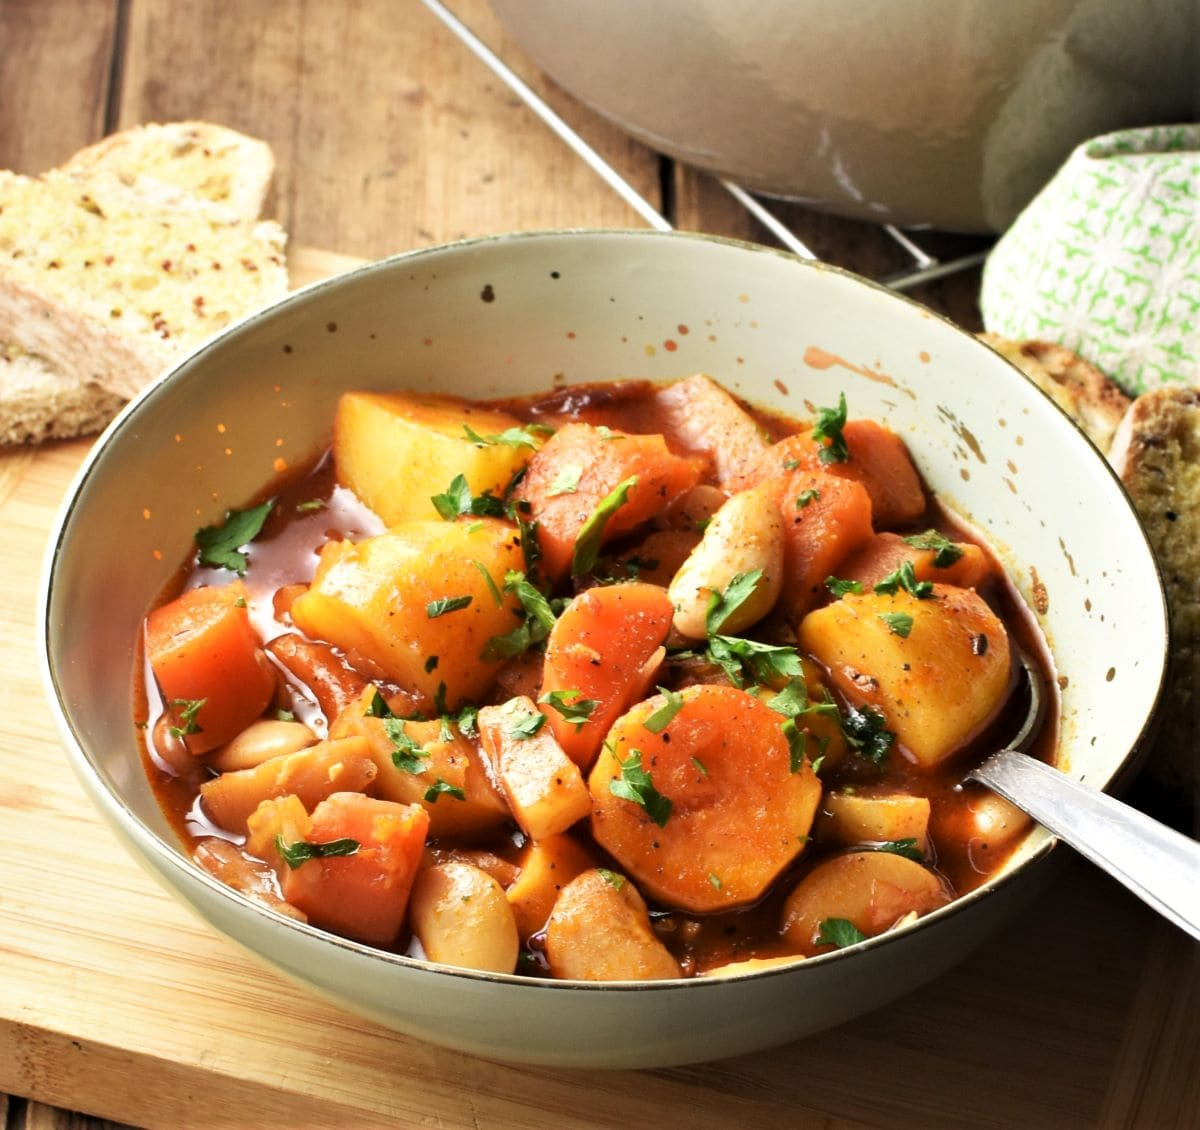 Side view of root vegetable stew in green bowl with spoon and bread in background.